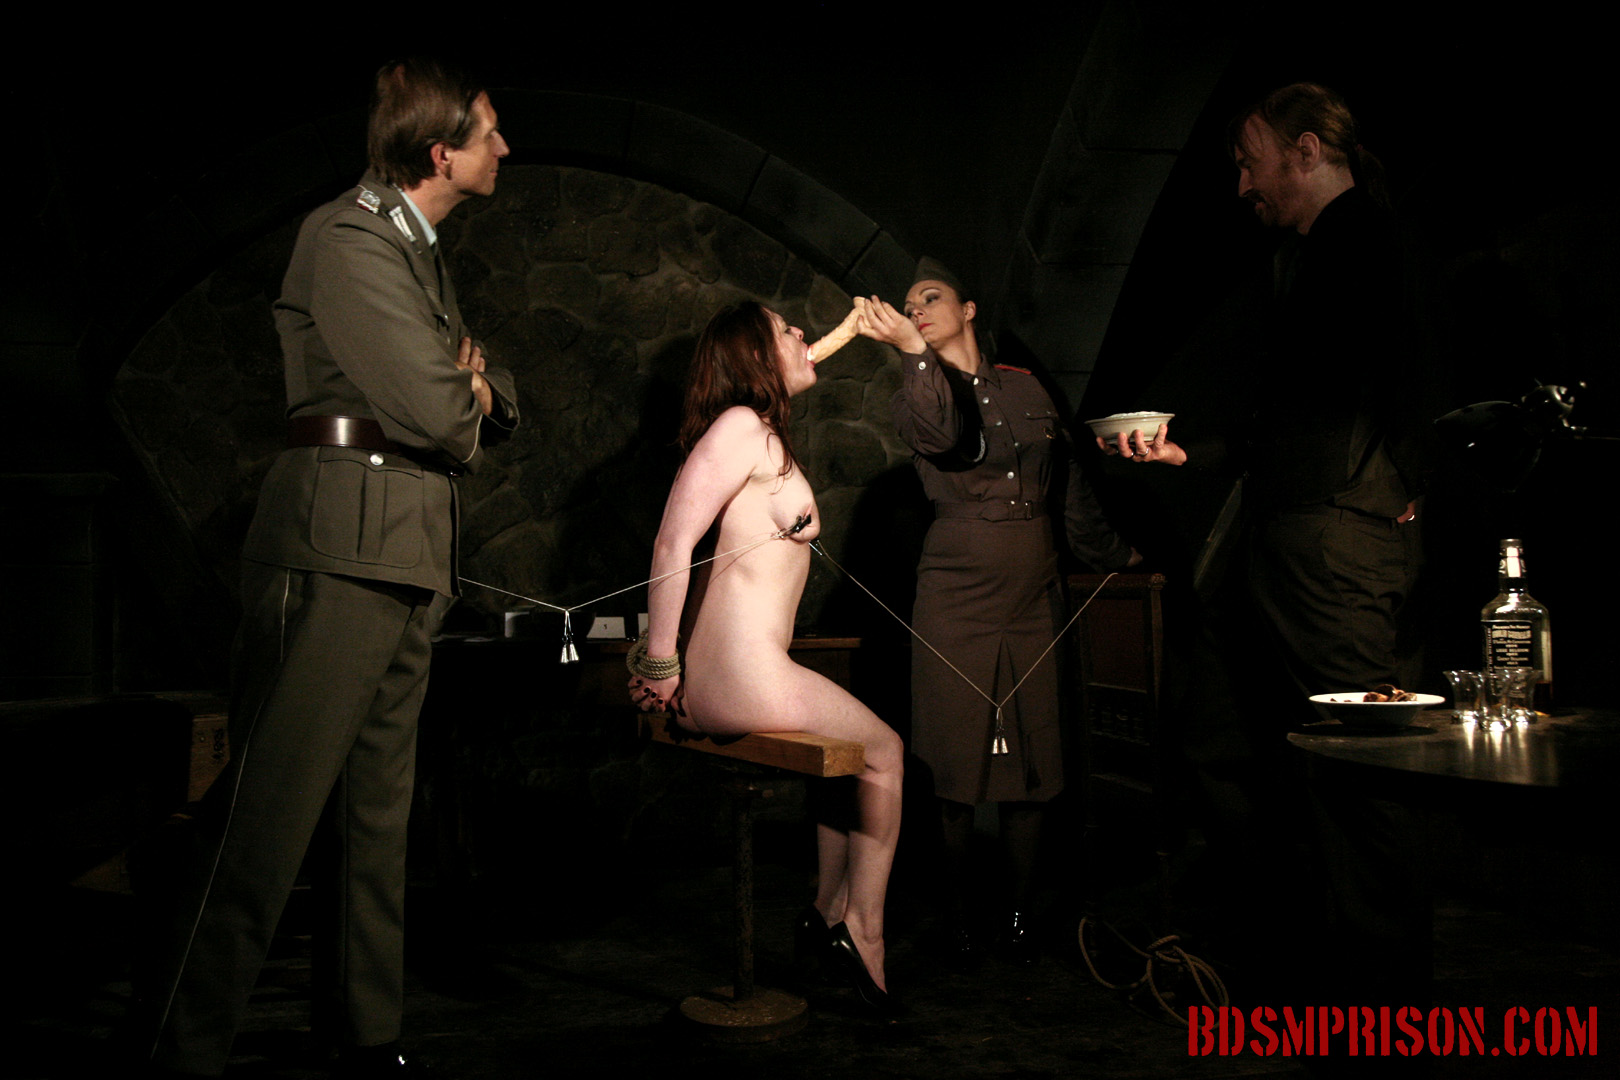 Sophie endures domination dildo deepthroat bj. Sophie is punished daily by three prison guards. She's been sentenced to lifelong sex slave traininig. She wakes up bound to a chair, nipple weights hanging low to the floor. Sophie will endure three BDSM Masters, domination, bondage, breast, cunt and nipple torture with clamps, intense spanking, whipping and smacking, humiliation, sex toys, dildo with a deepthroat BJ. They even have whip cream for her. This prison slut has earned a treat.